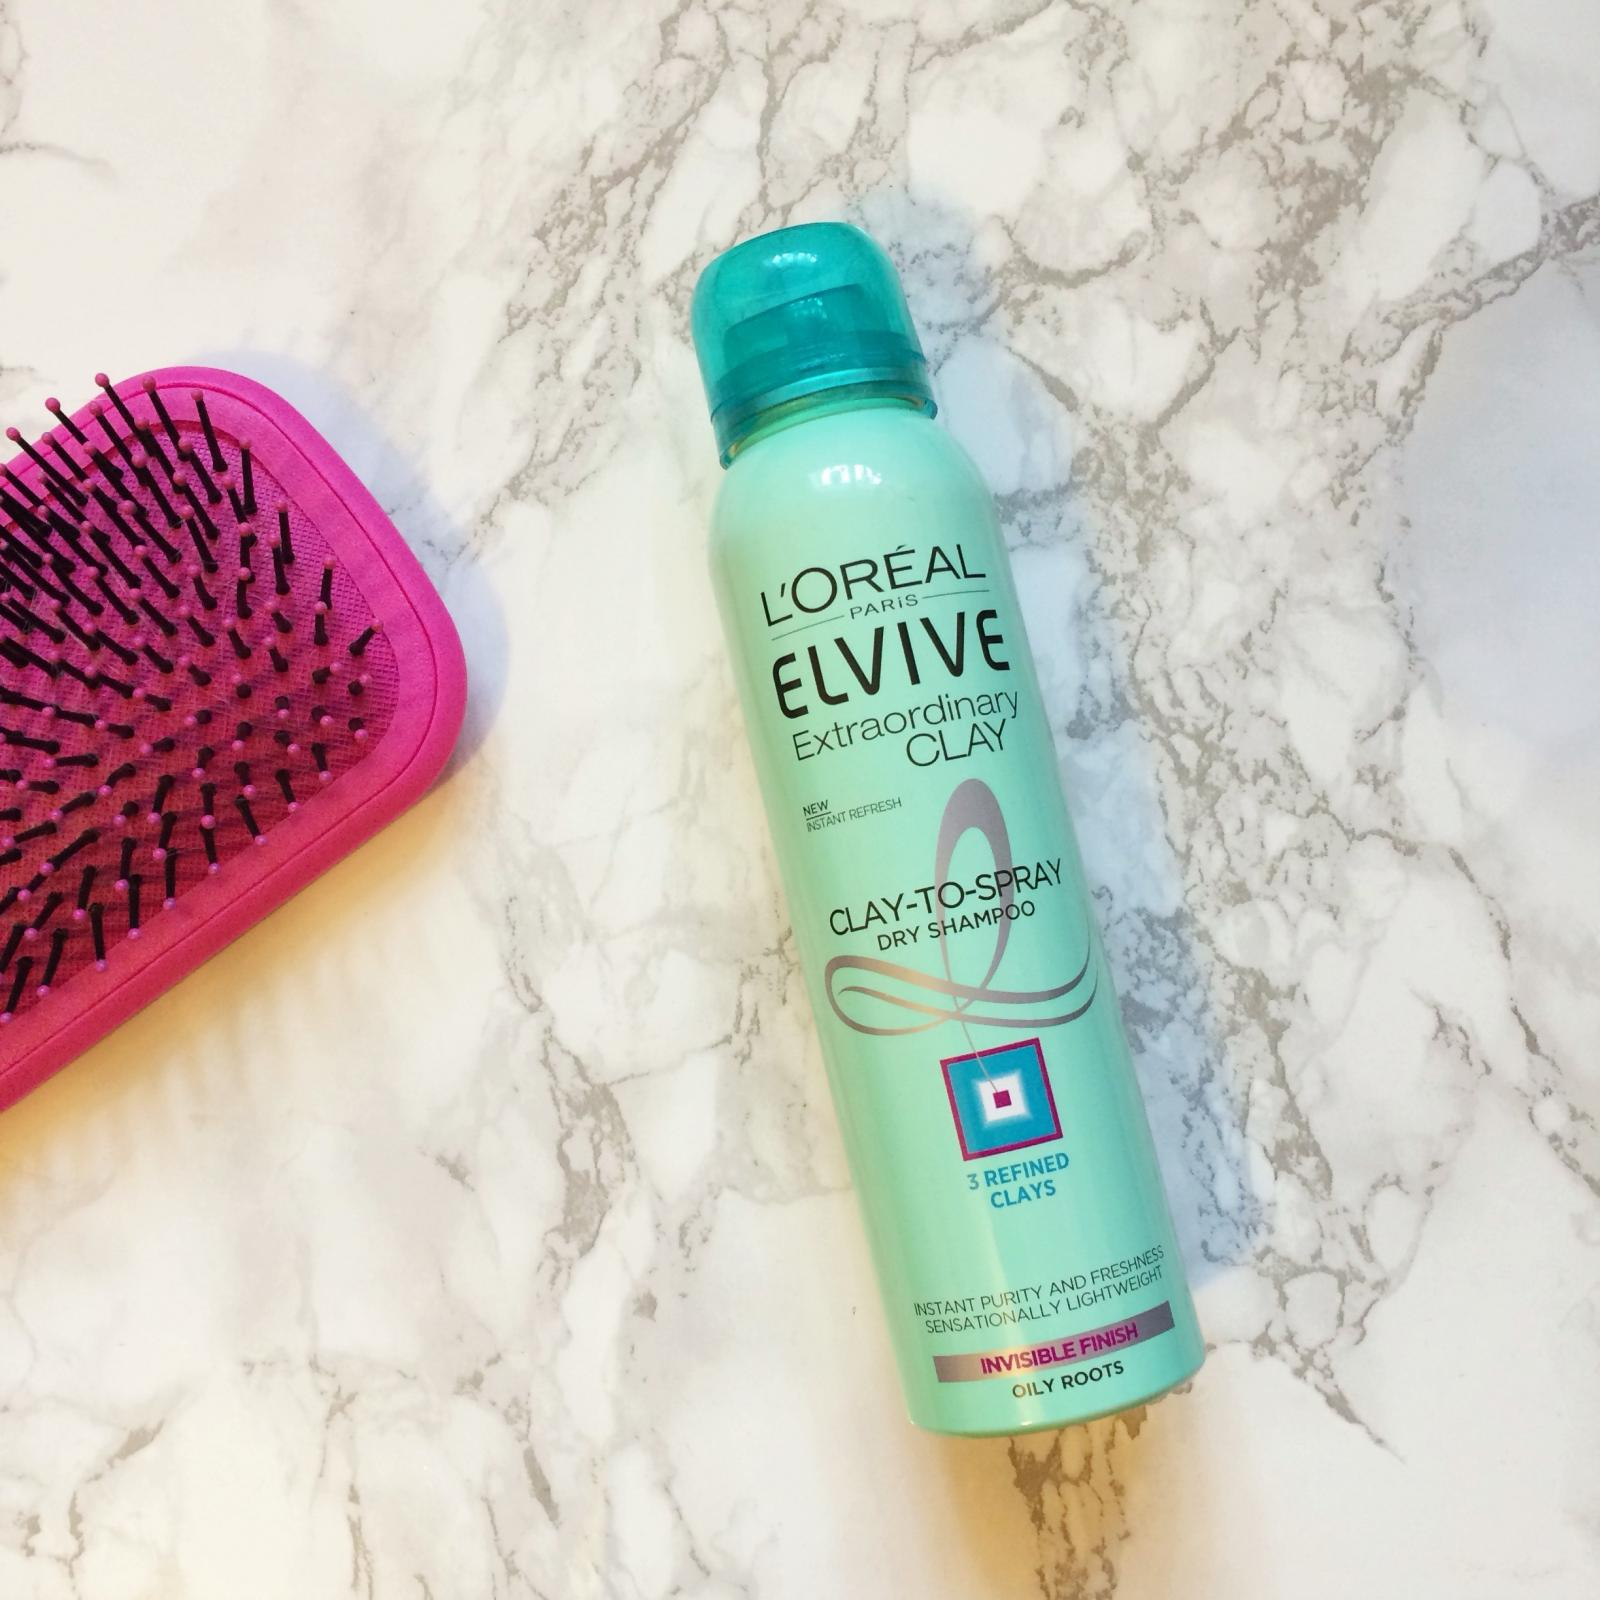 Loreal Elvive Extraordinary Clay Dry ShampooReview